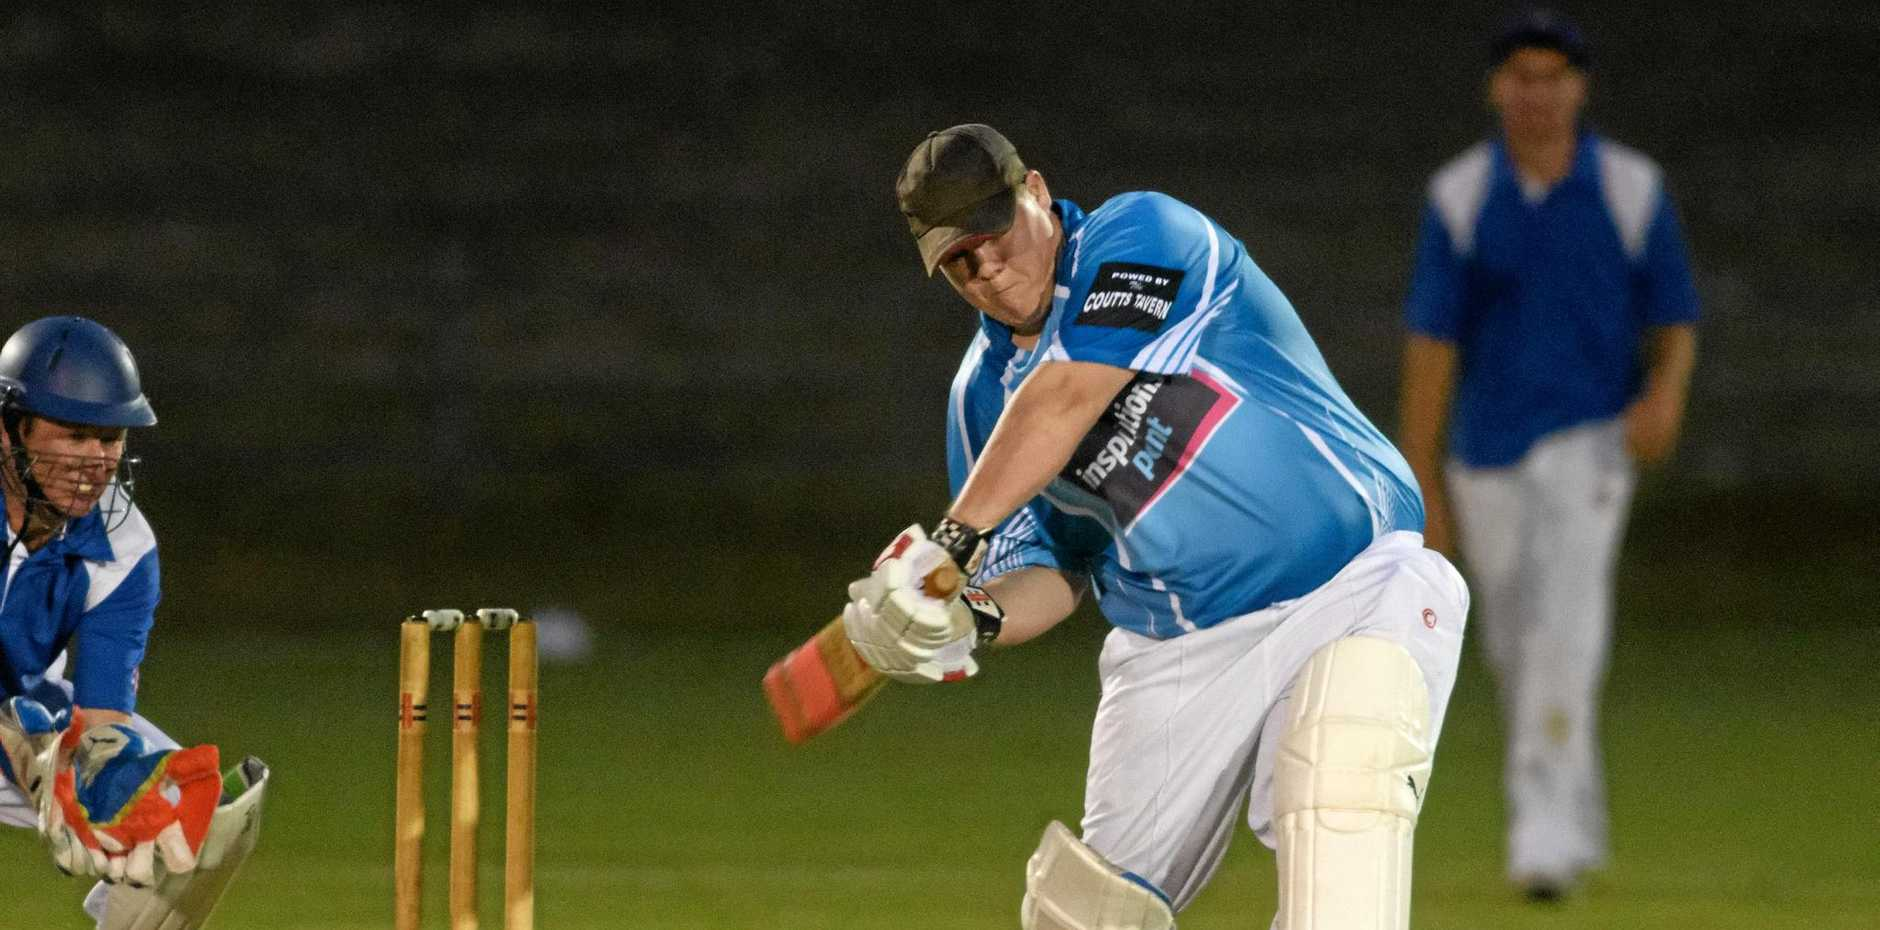 Brenda Cotten hits out for Coutts Crossing at the night cricket grand final at McKittrick Park.